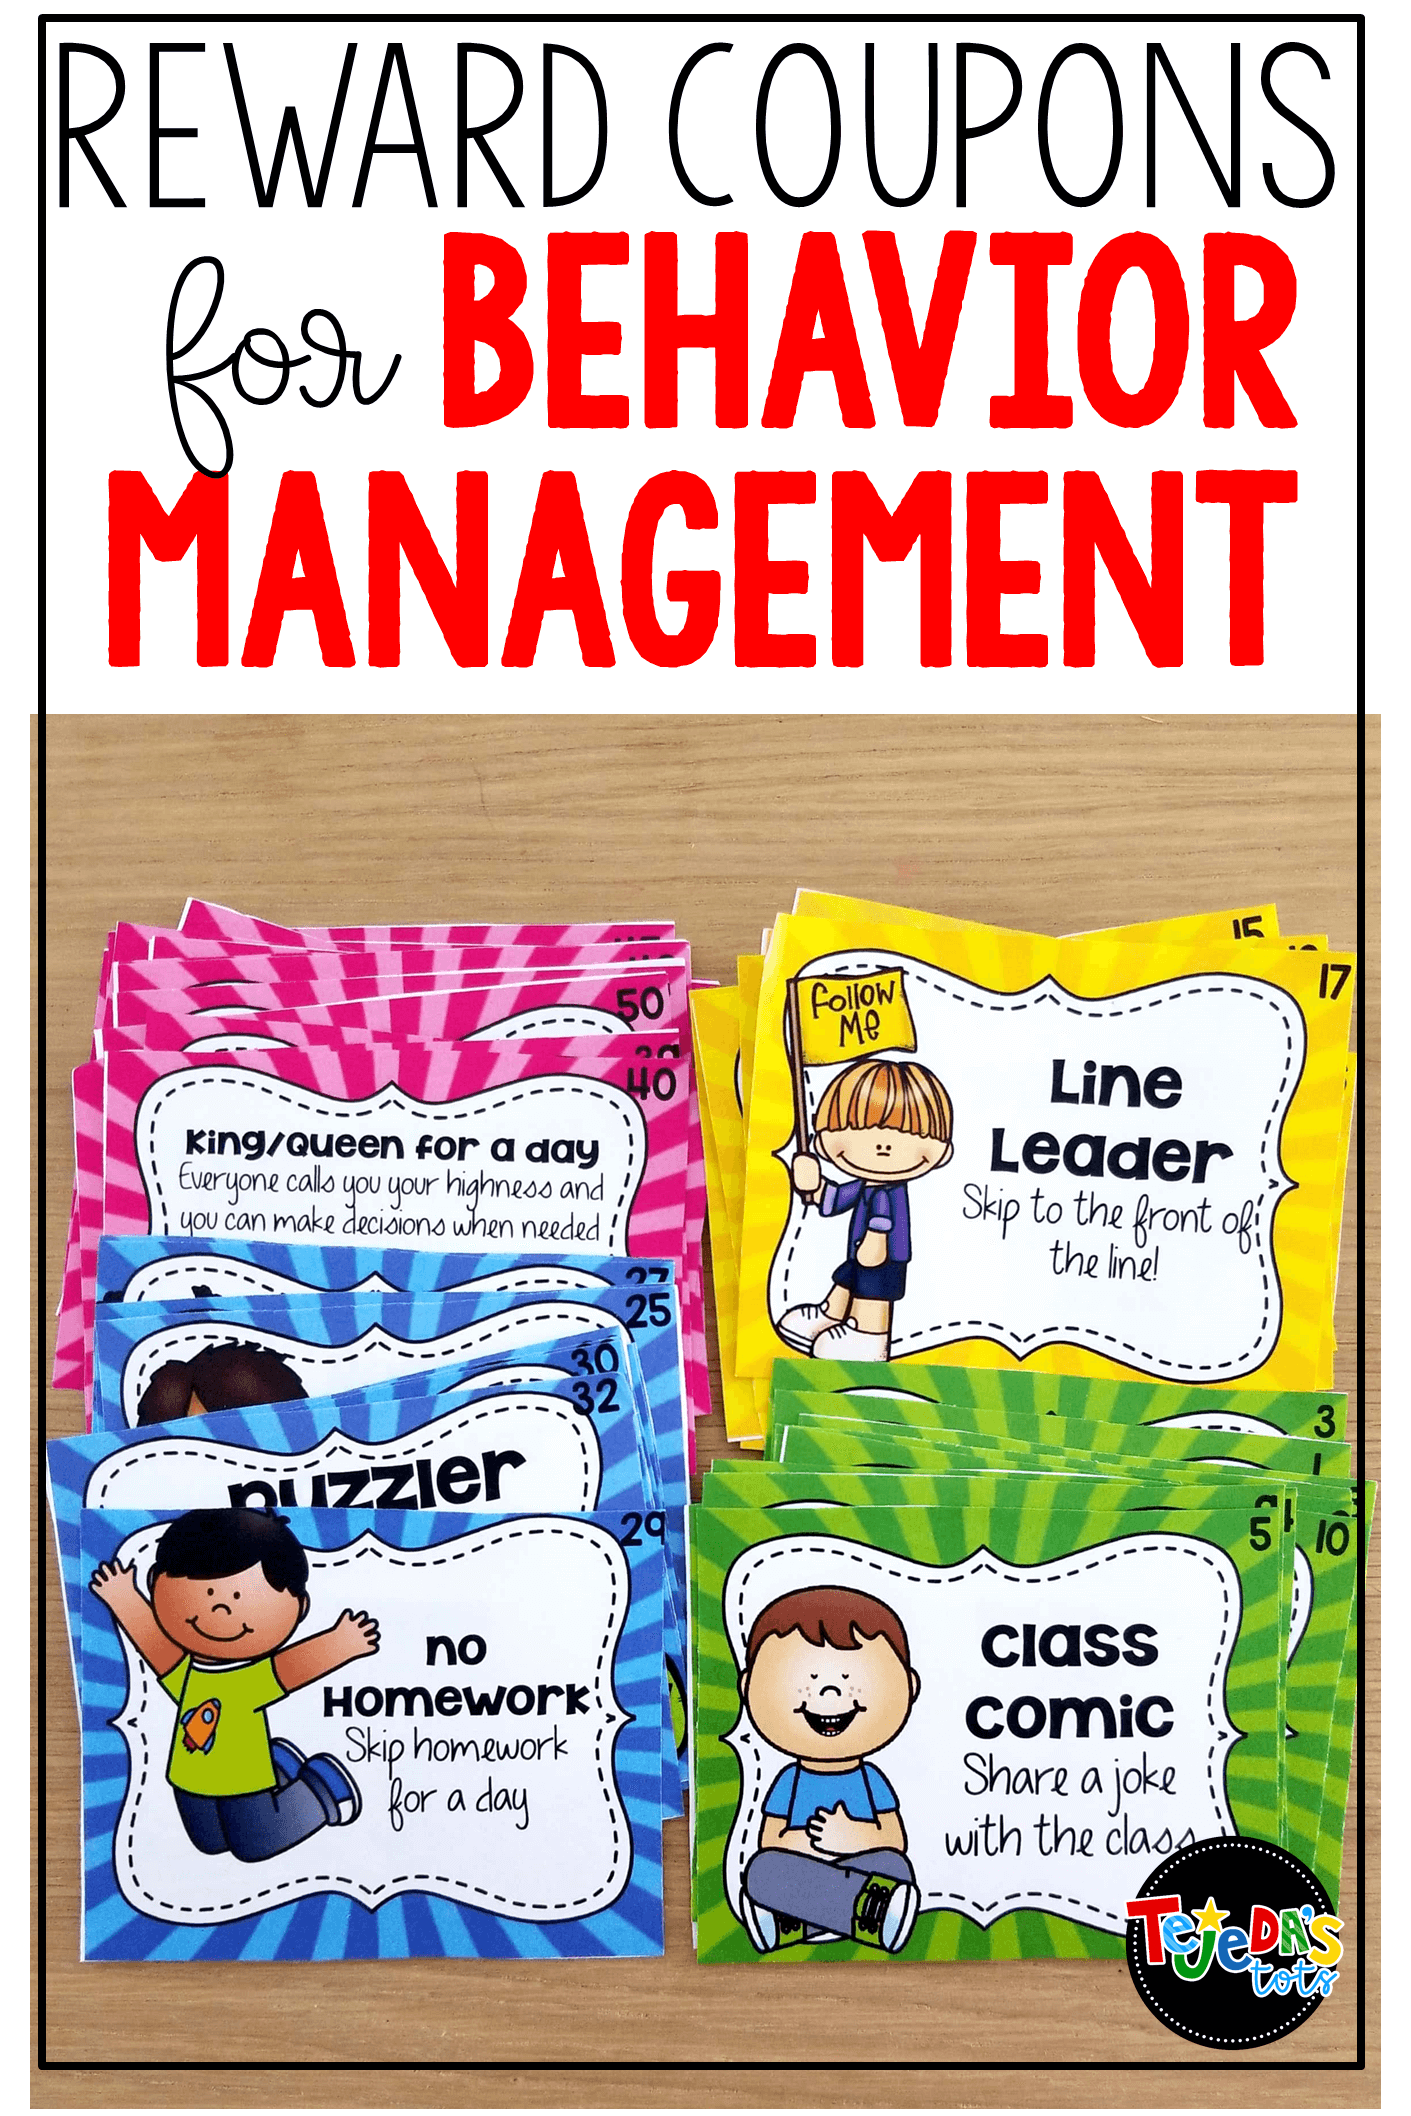 Say goodbye to your prize box and hello to reward coupons! These color-coded coupons are perfect motivation for behavior management. Kids earn hole-punches throughout the month and redeem punch cards for coupons. Such a great incentive for behavior! #tejedastots #behaviormanagement #rewardcoupons